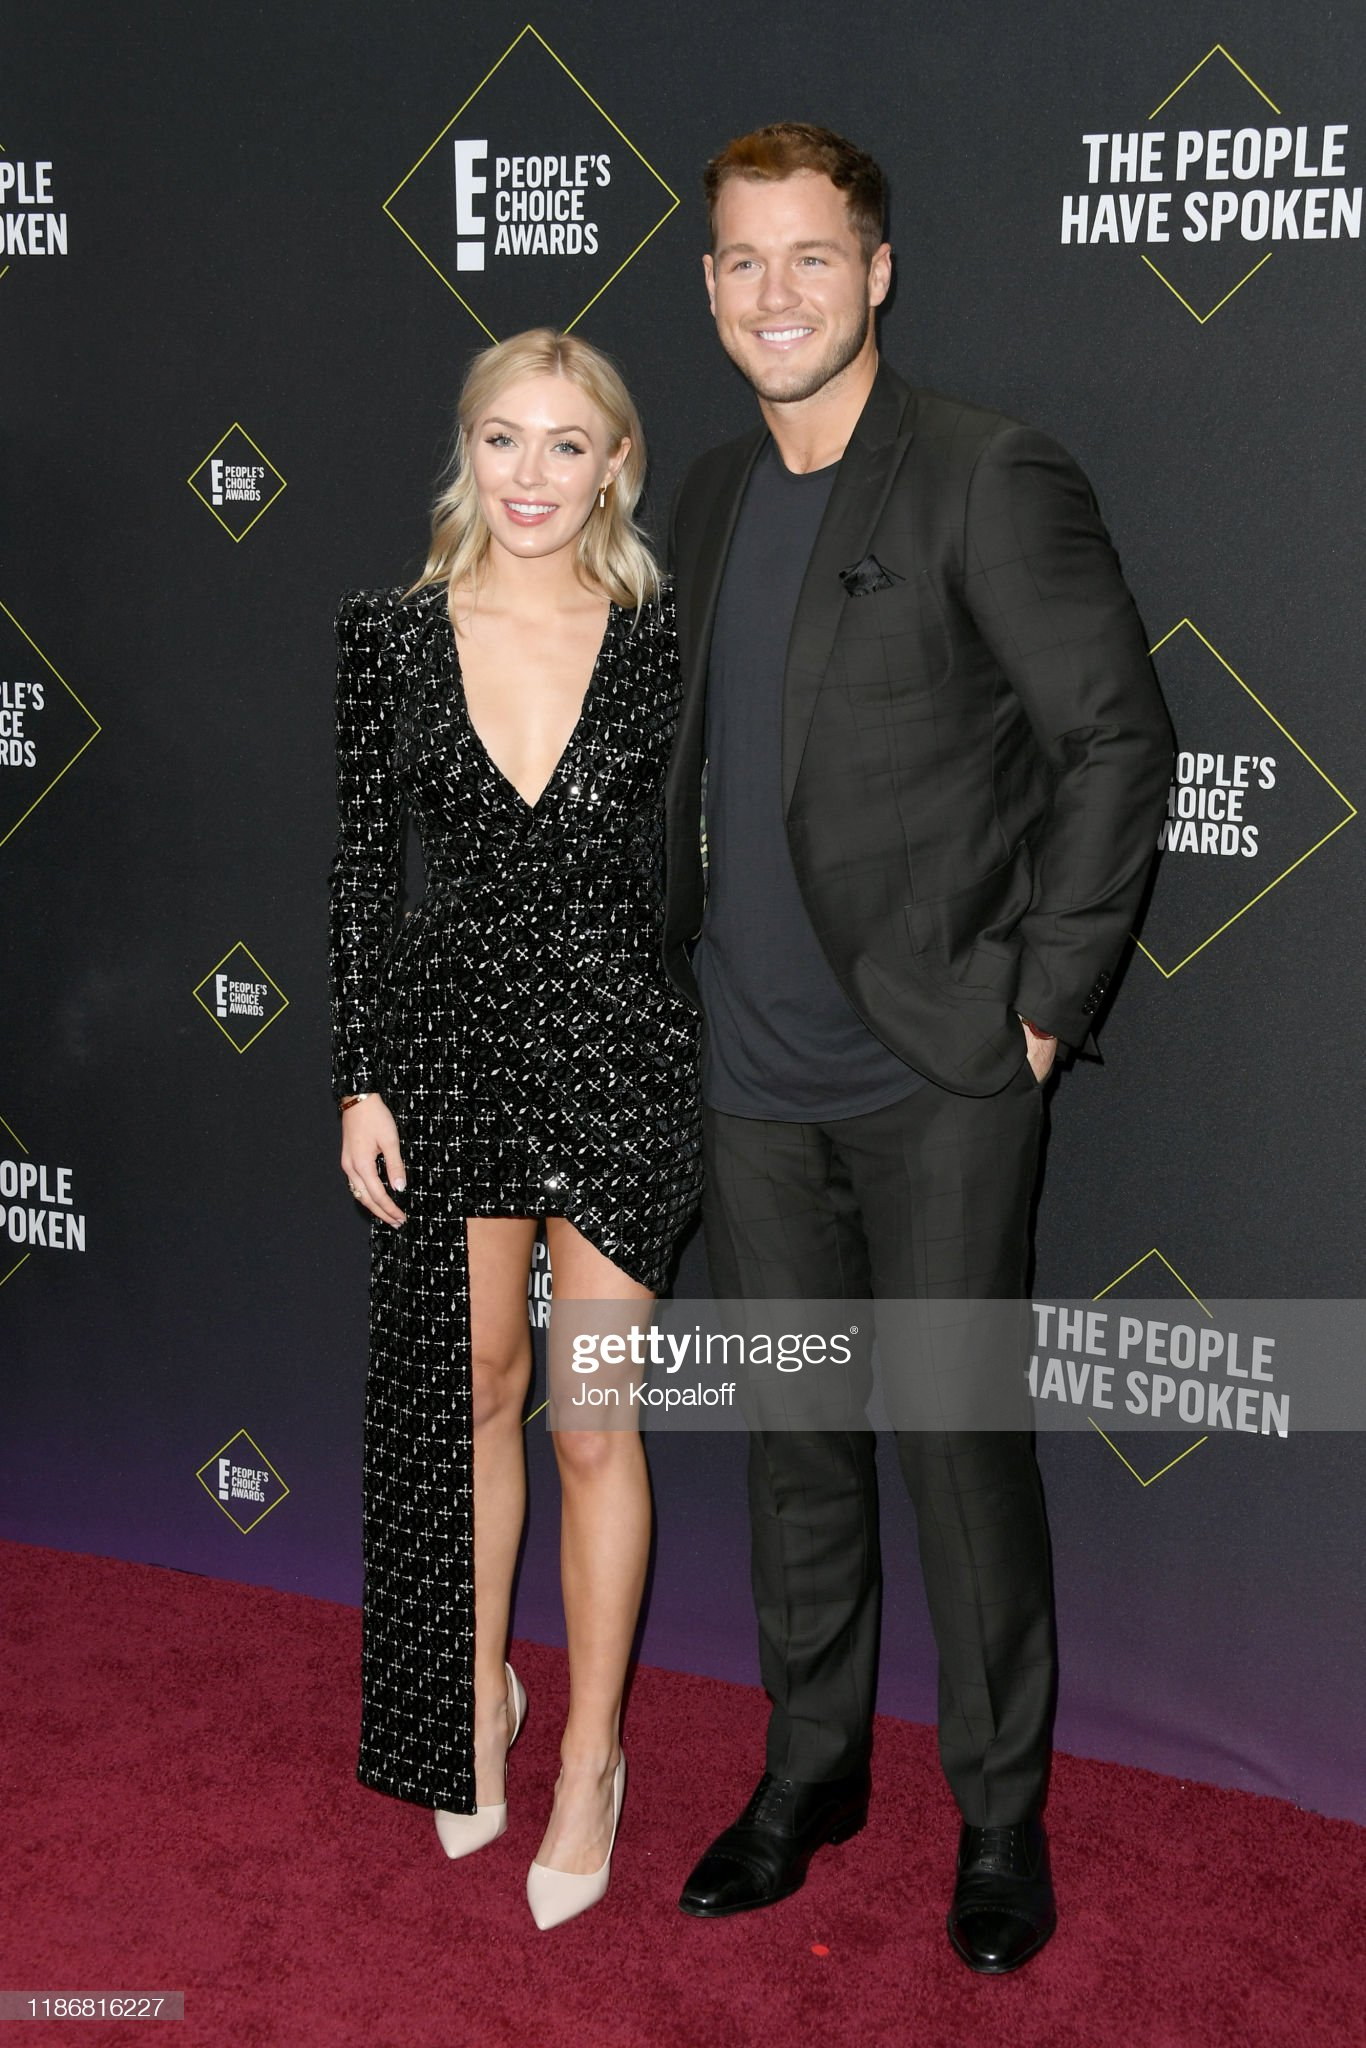 Colton Underwood & Cassie Randolph - Bachelor 23 - Discussion - Page 14 Cassie-randolph-and-colton-underwood-attend-the-2019-e-peoples-choice-picture-id1186816227?s=2048x2048